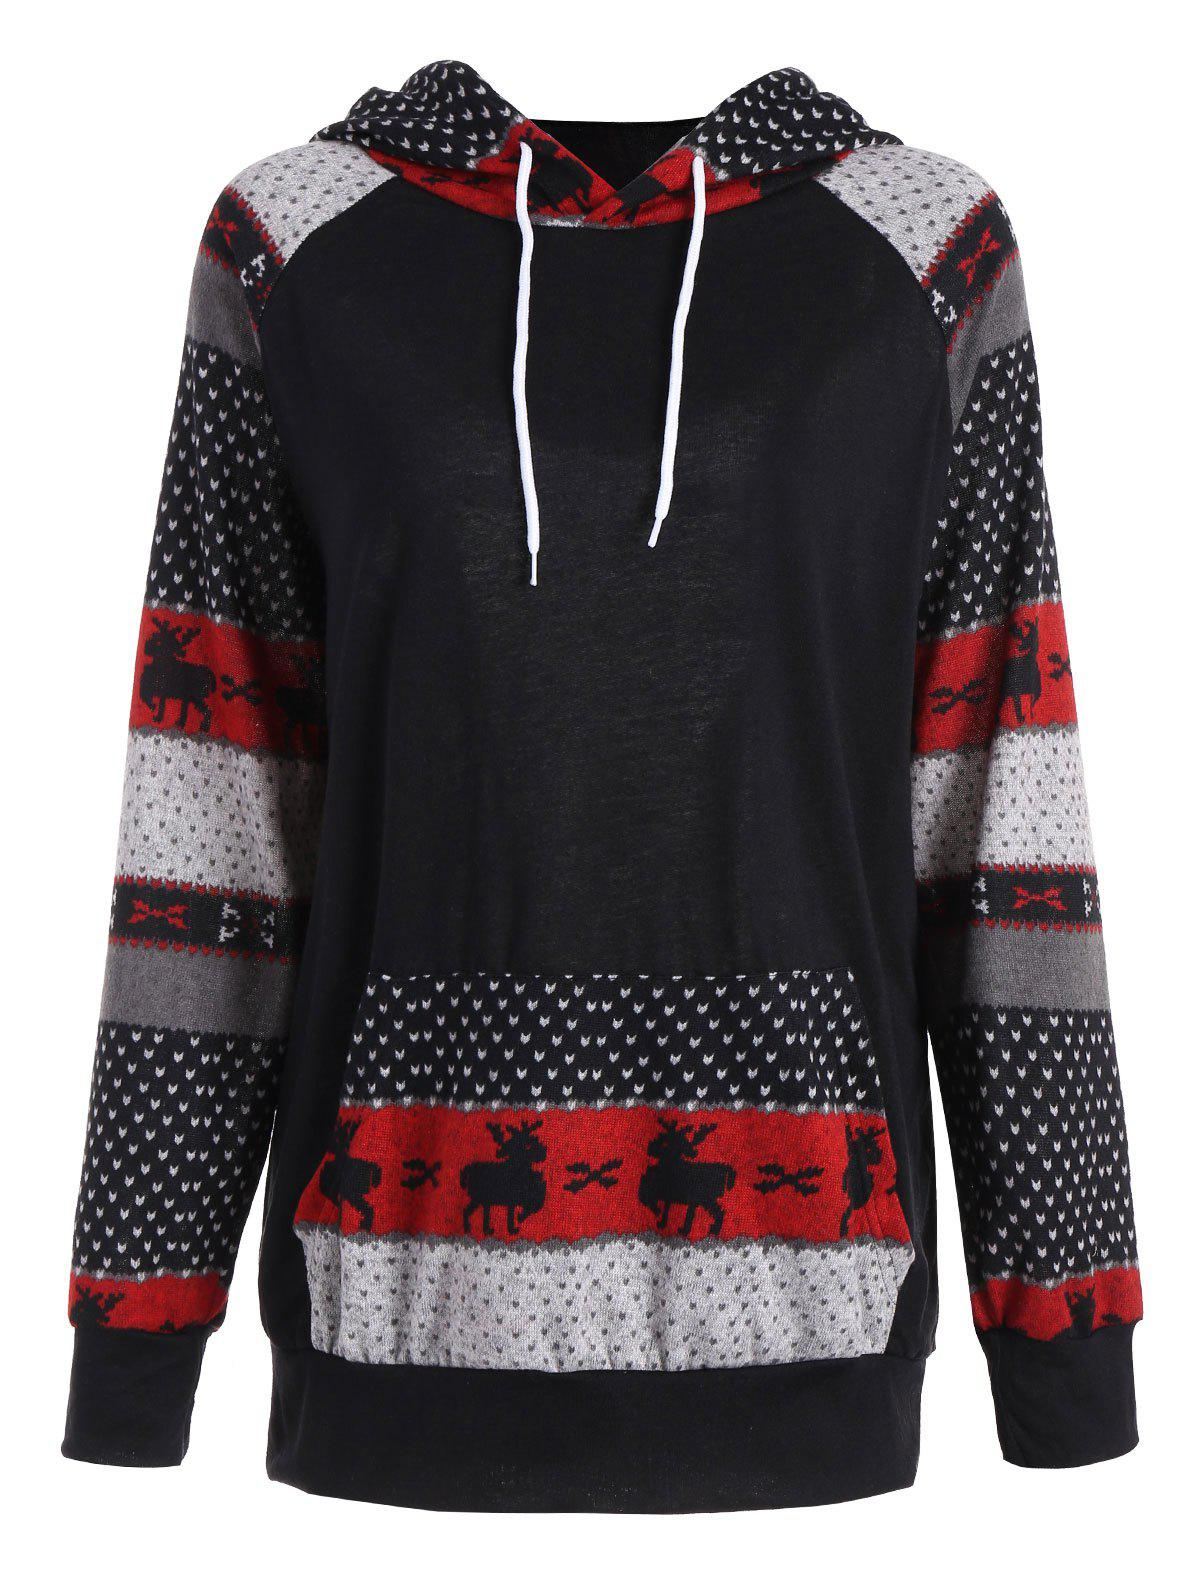 Plus Size Pocket Christmas Deer Raglan Sleeve HoodieWOMEN<br><br>Size: 5XL; Color: BLACK; Material: Cotton Blend,Polyester; Shirt Length: Long; Sleeve Length: Full; Style: Casual; Pattern Style: Patchwork; Embellishment: Panel; Season: Fall,Winter; Weight: 0.3500kg; Package Contents: 1 x Hoodie;